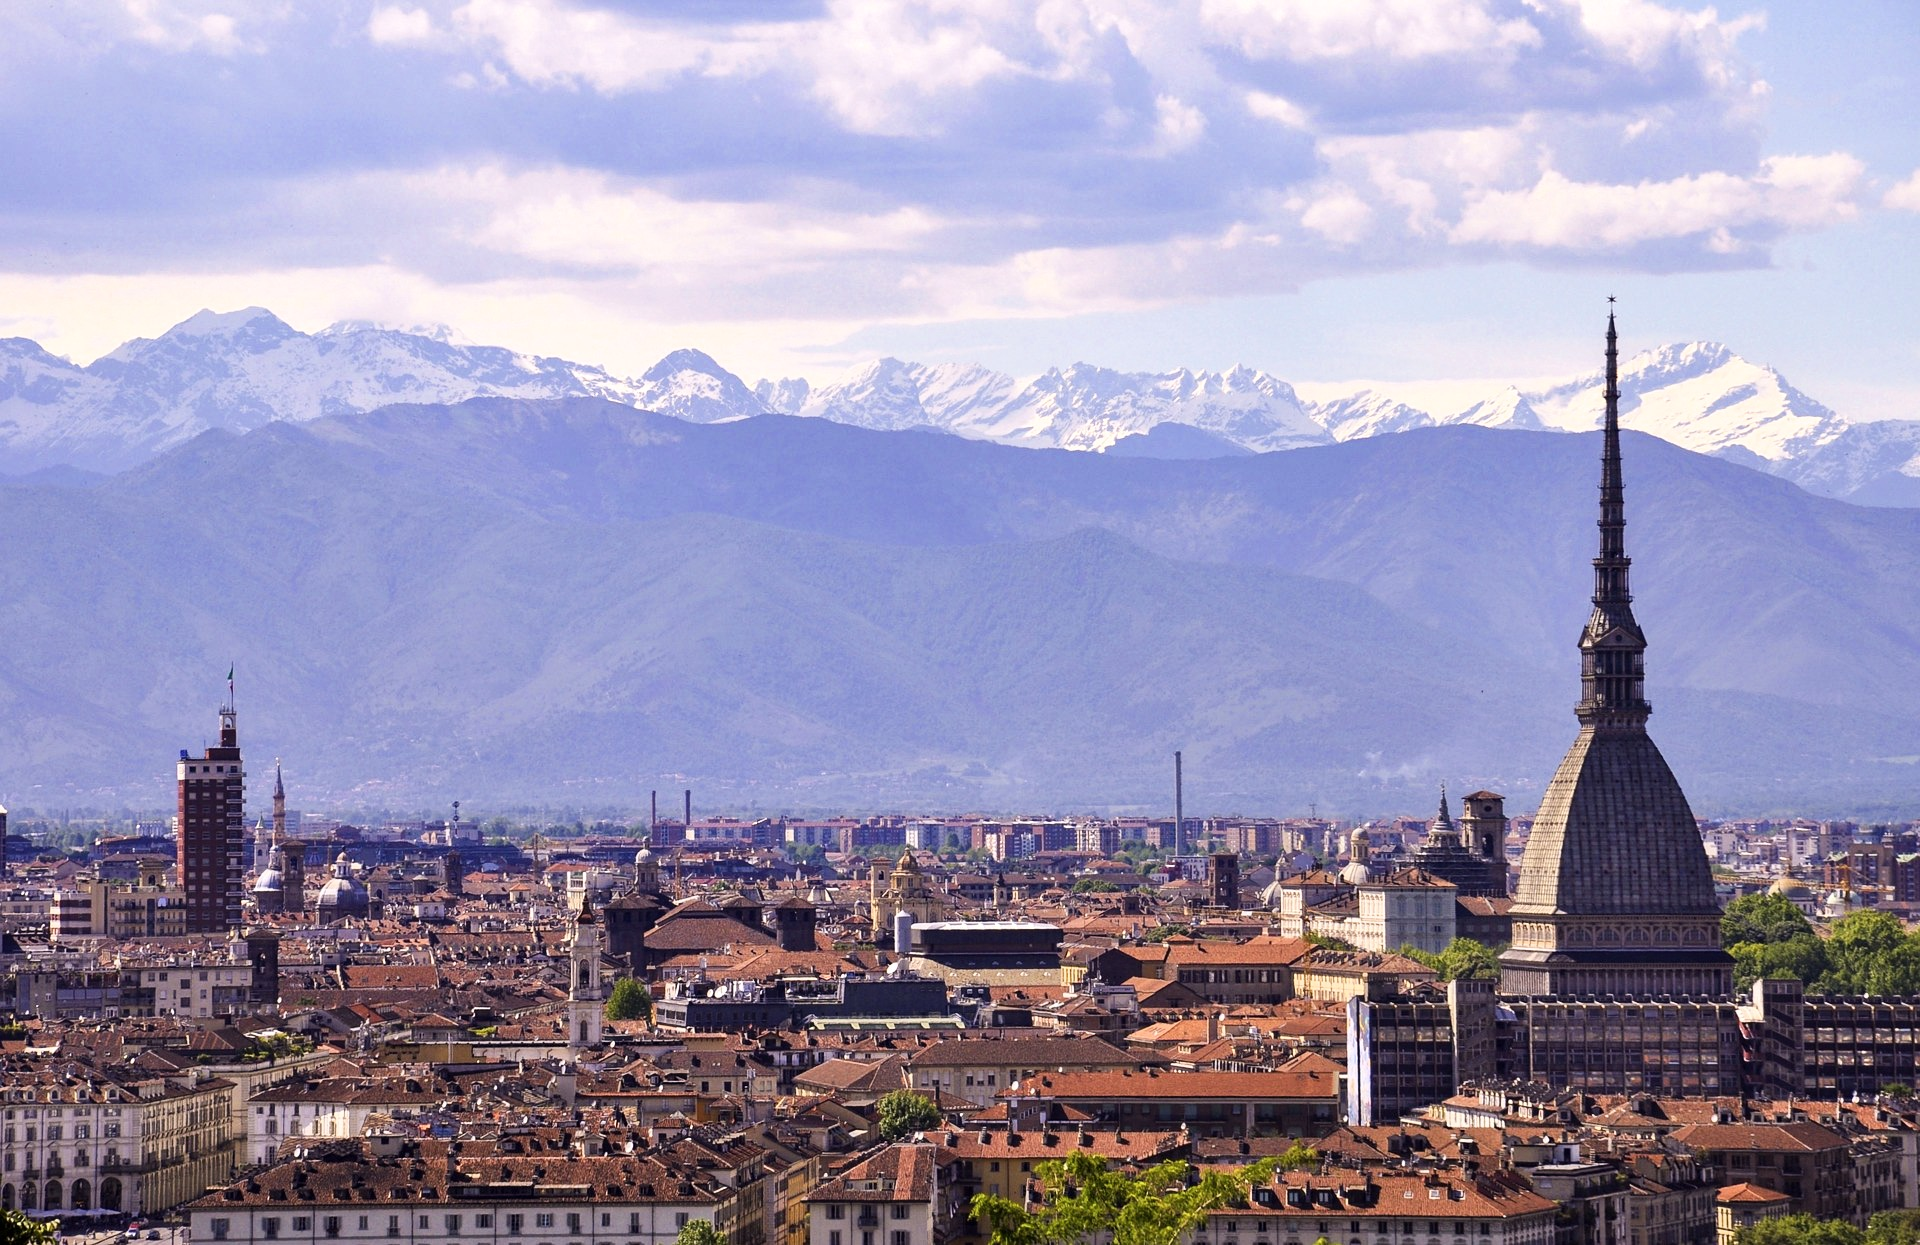 Stock image view of Turin, a great day trip from Milan